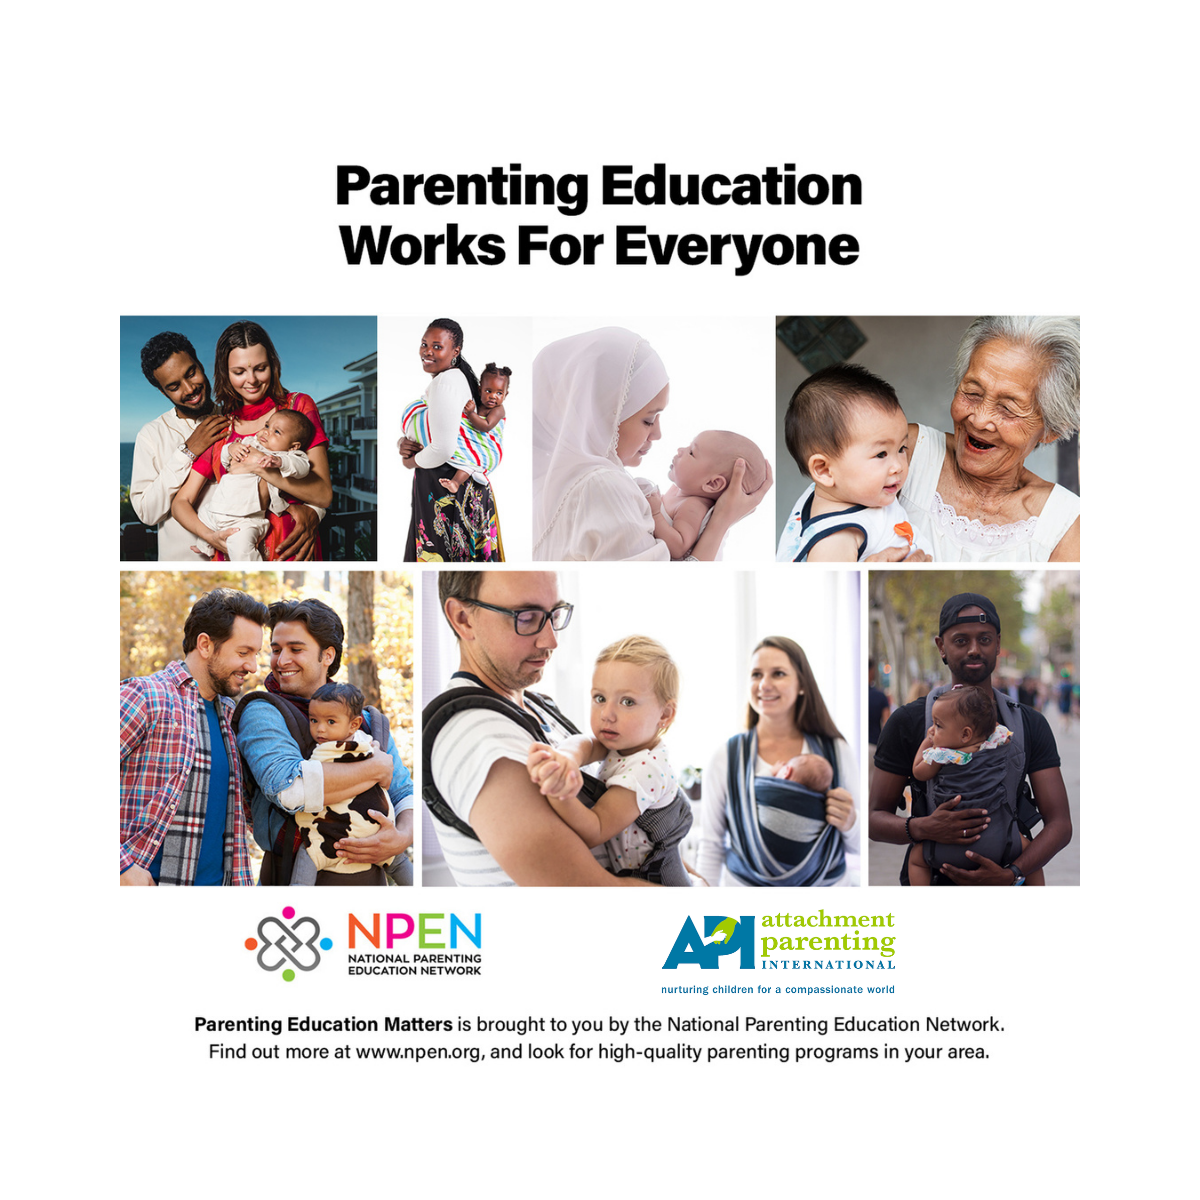 Parenting Education Works for Everyone